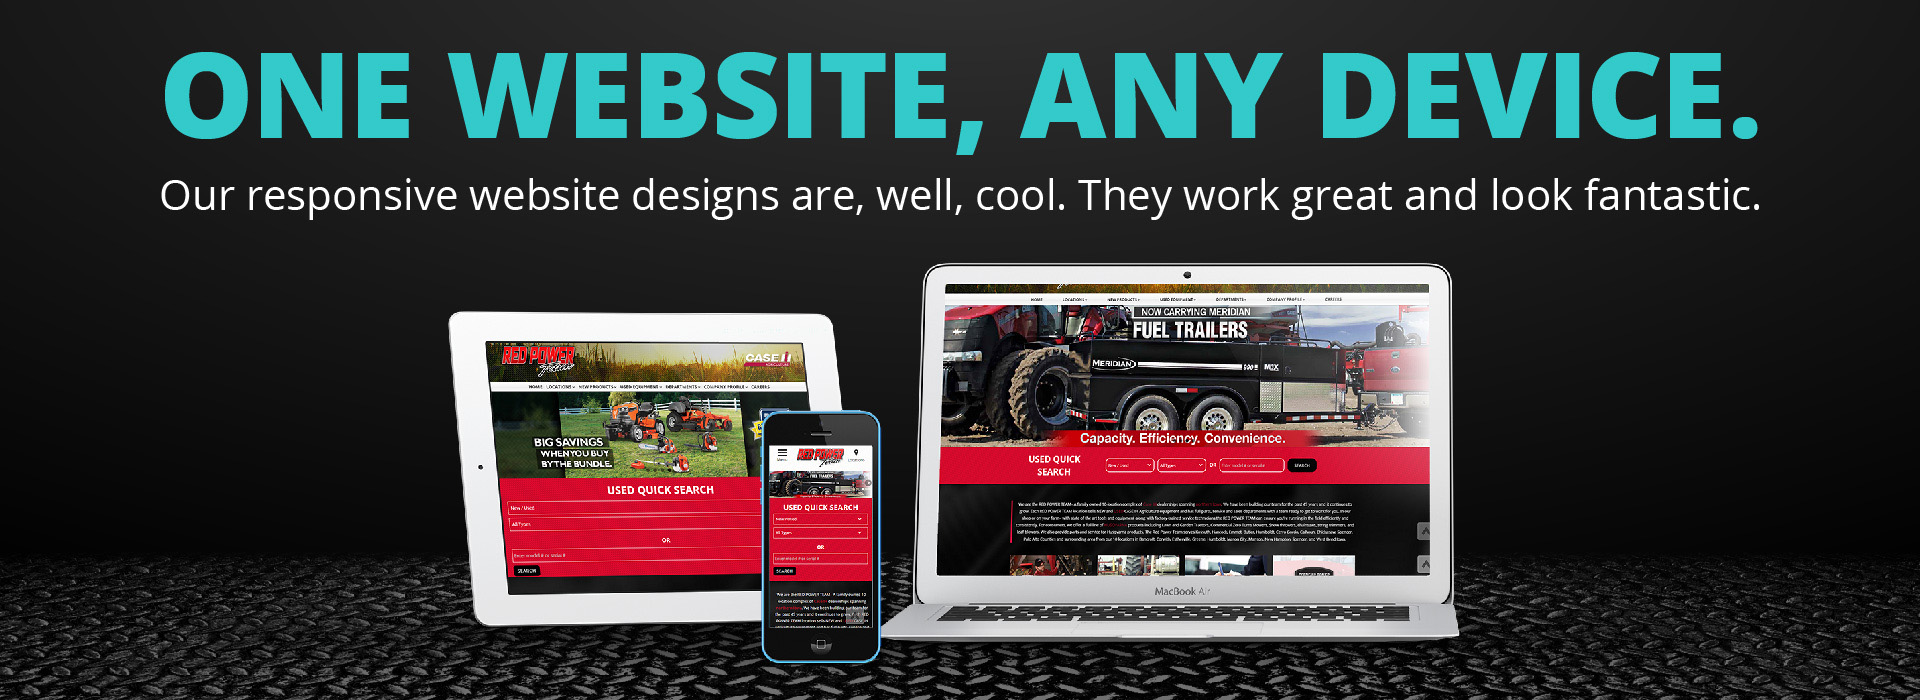 One Website, Any Device. Our responsive designs are, well, cool. They work great and look fantastic.